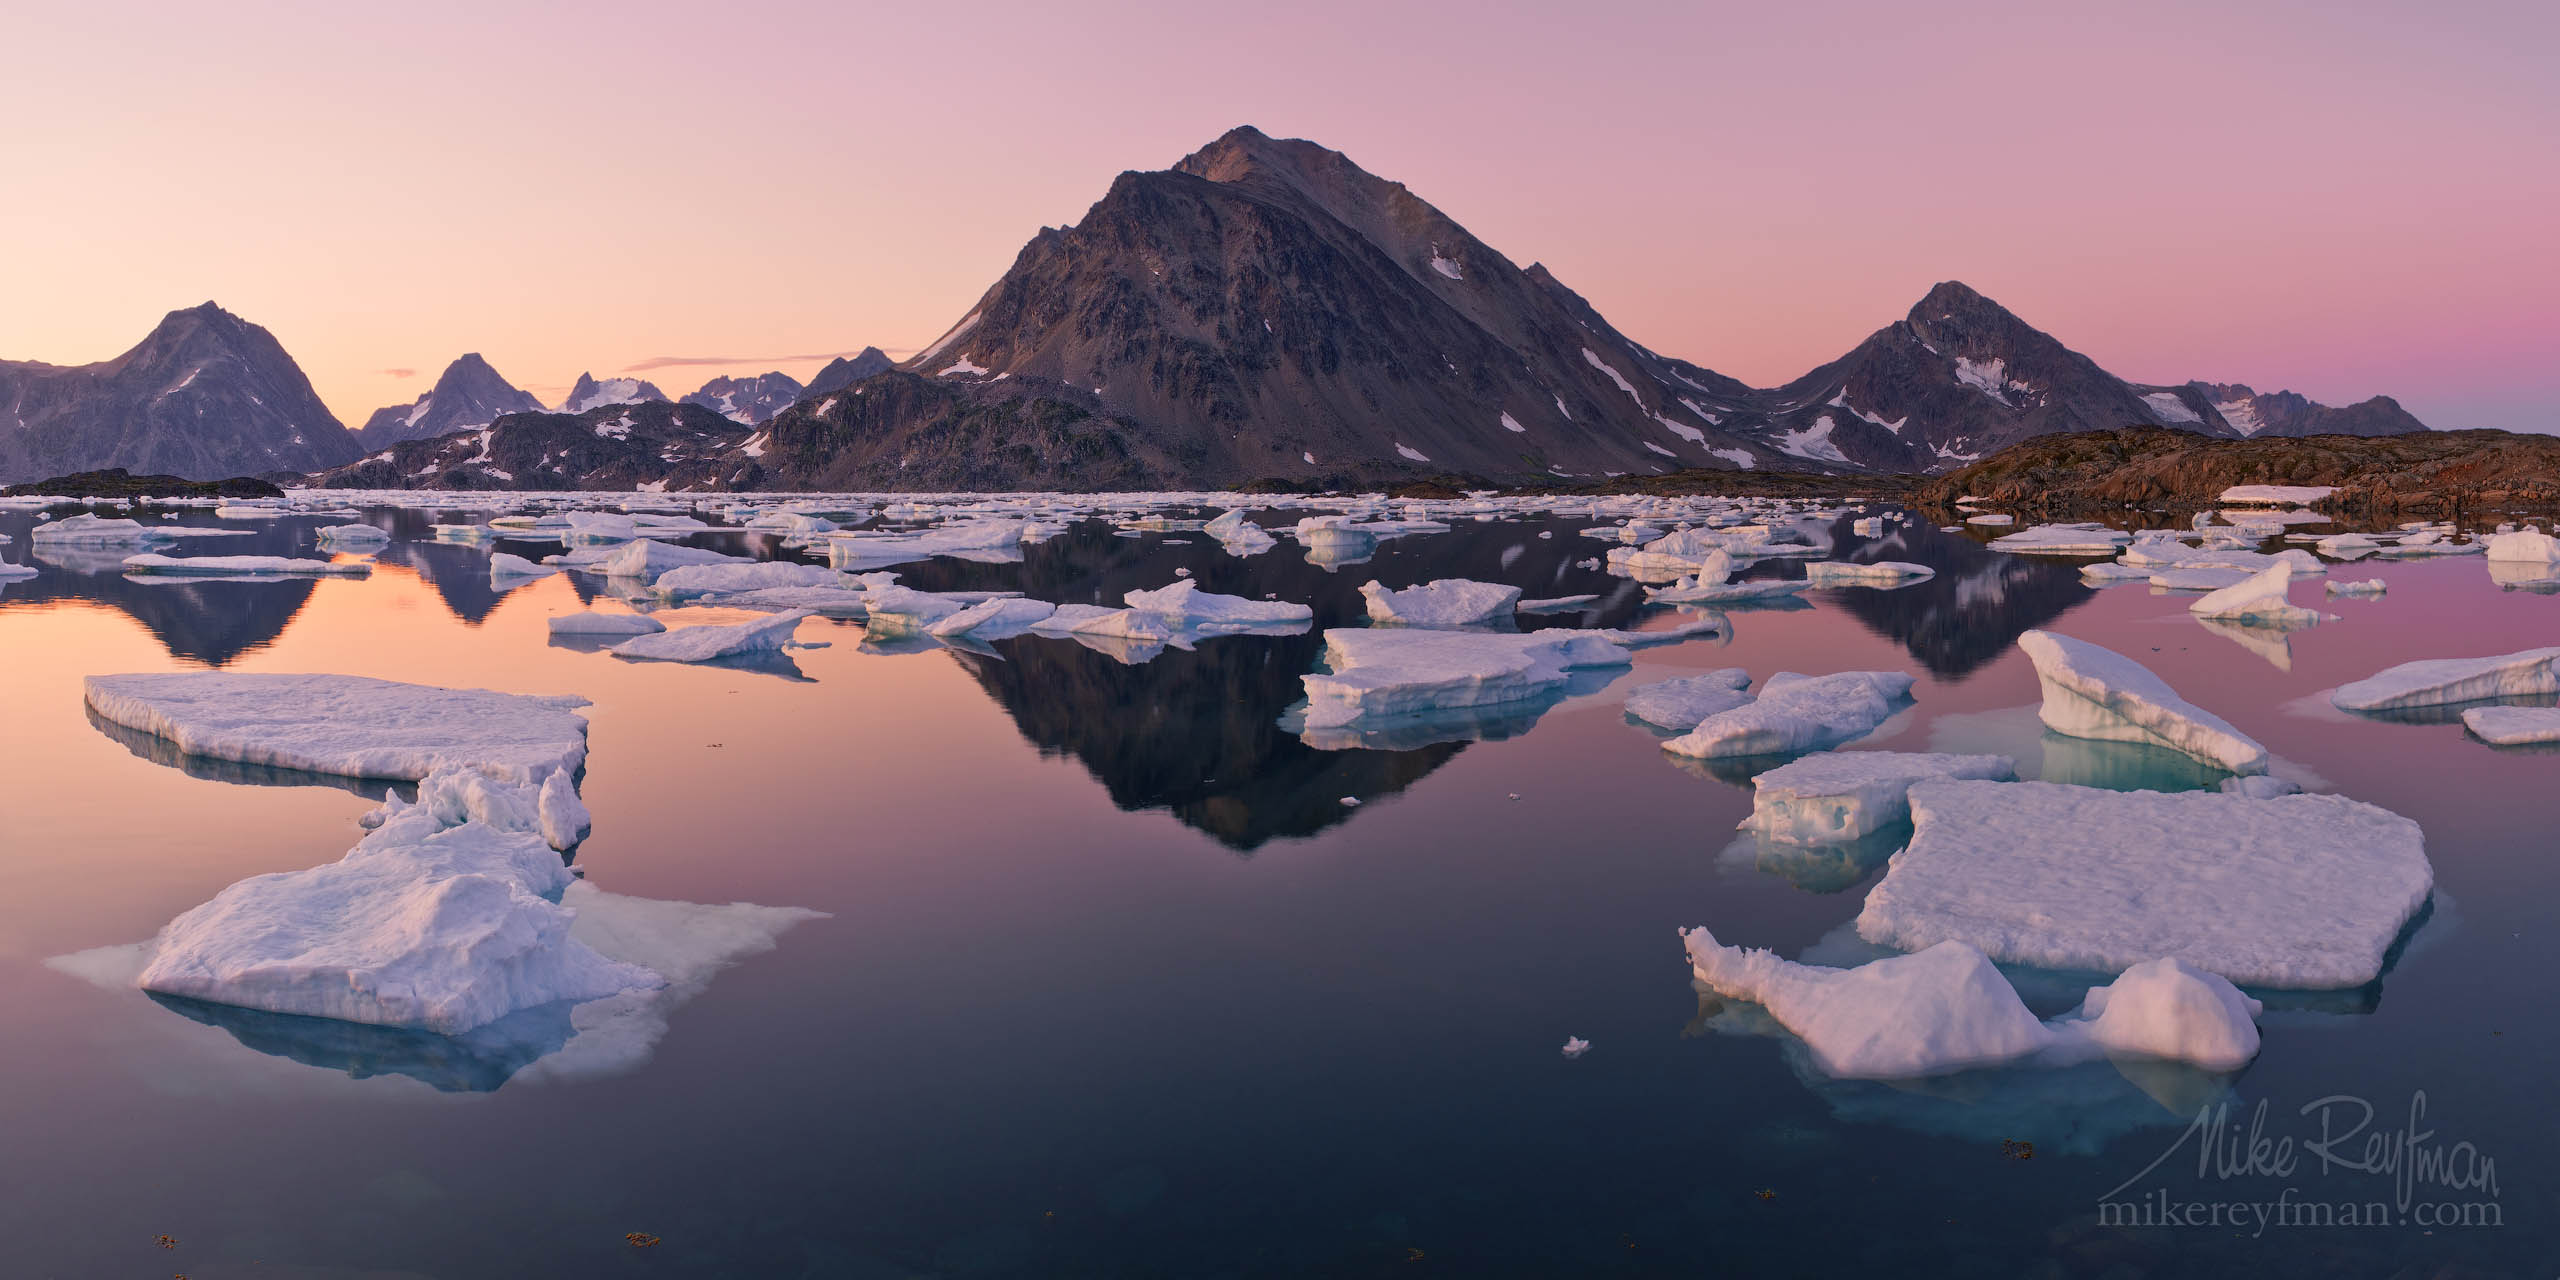 Tranquility. Dusk at Torsuut Tunoq sound. Kulusuk Island, Southeastern Greenland. P12-MRP3X4691-95-Pano - Selected panoramic images with 2:1 aspect ratio - Mike Reyfman Photography